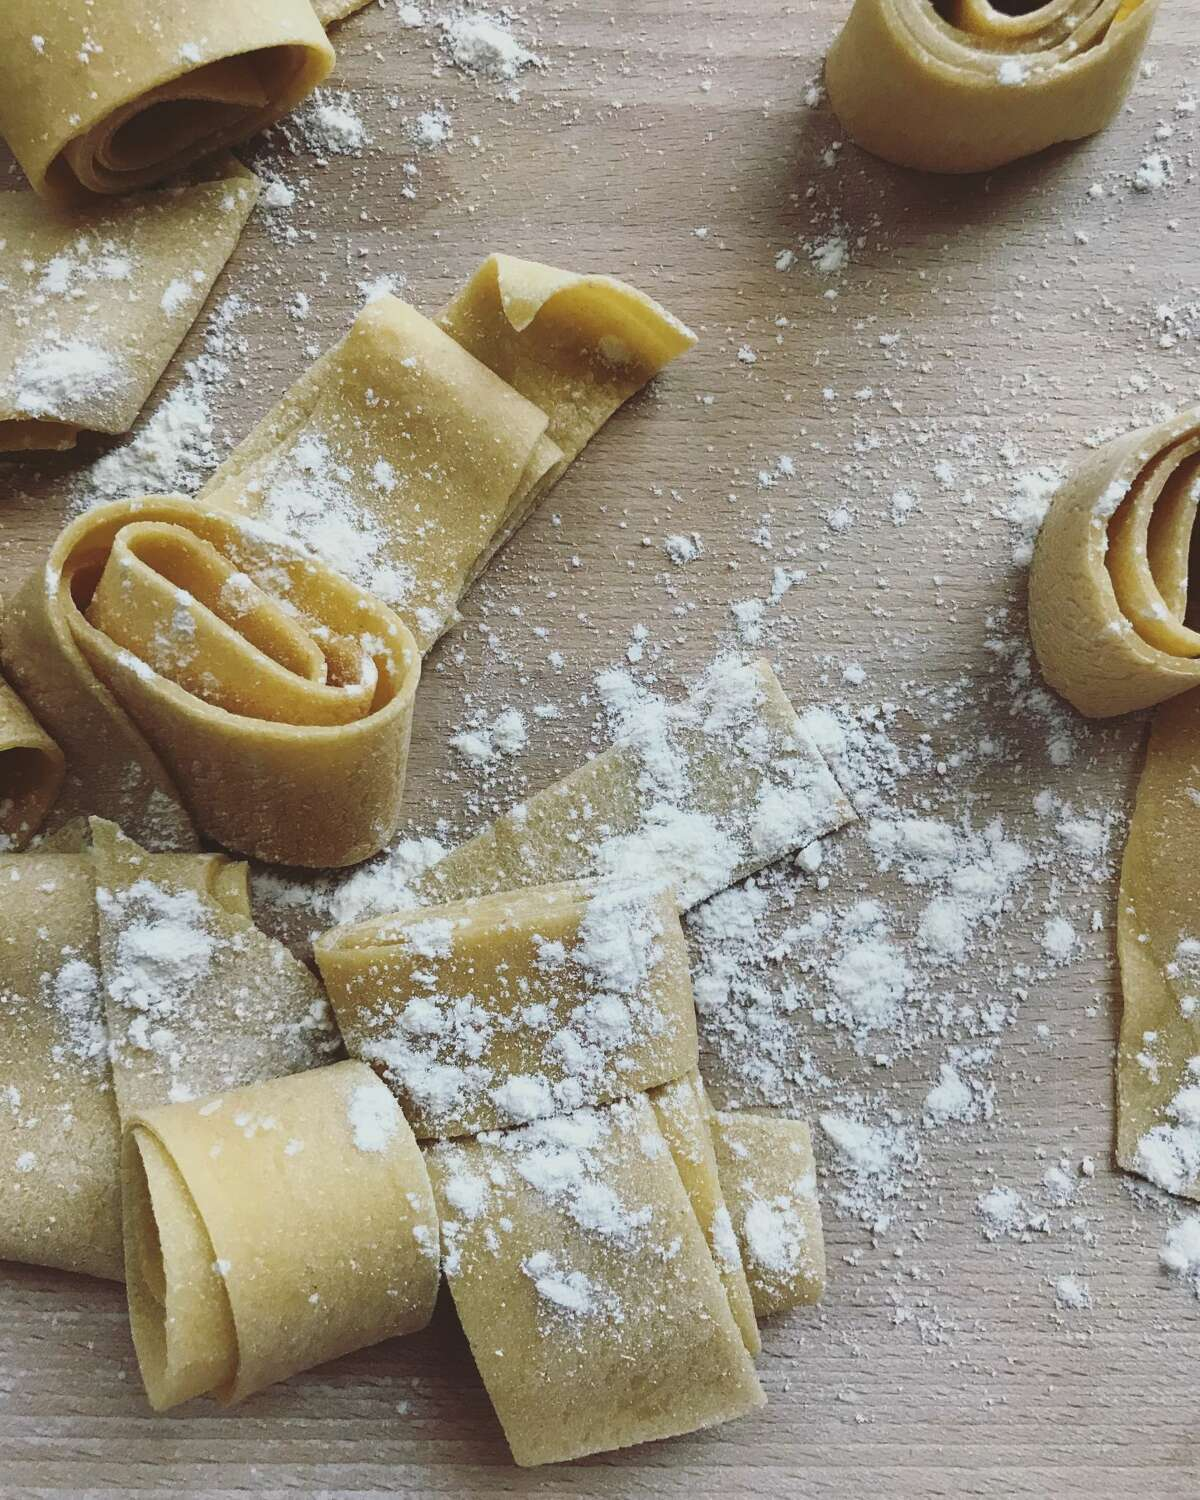 Writer Stephanie Gravalese marks progress in learning how to make 100 pasta shapes via her Instagram page.